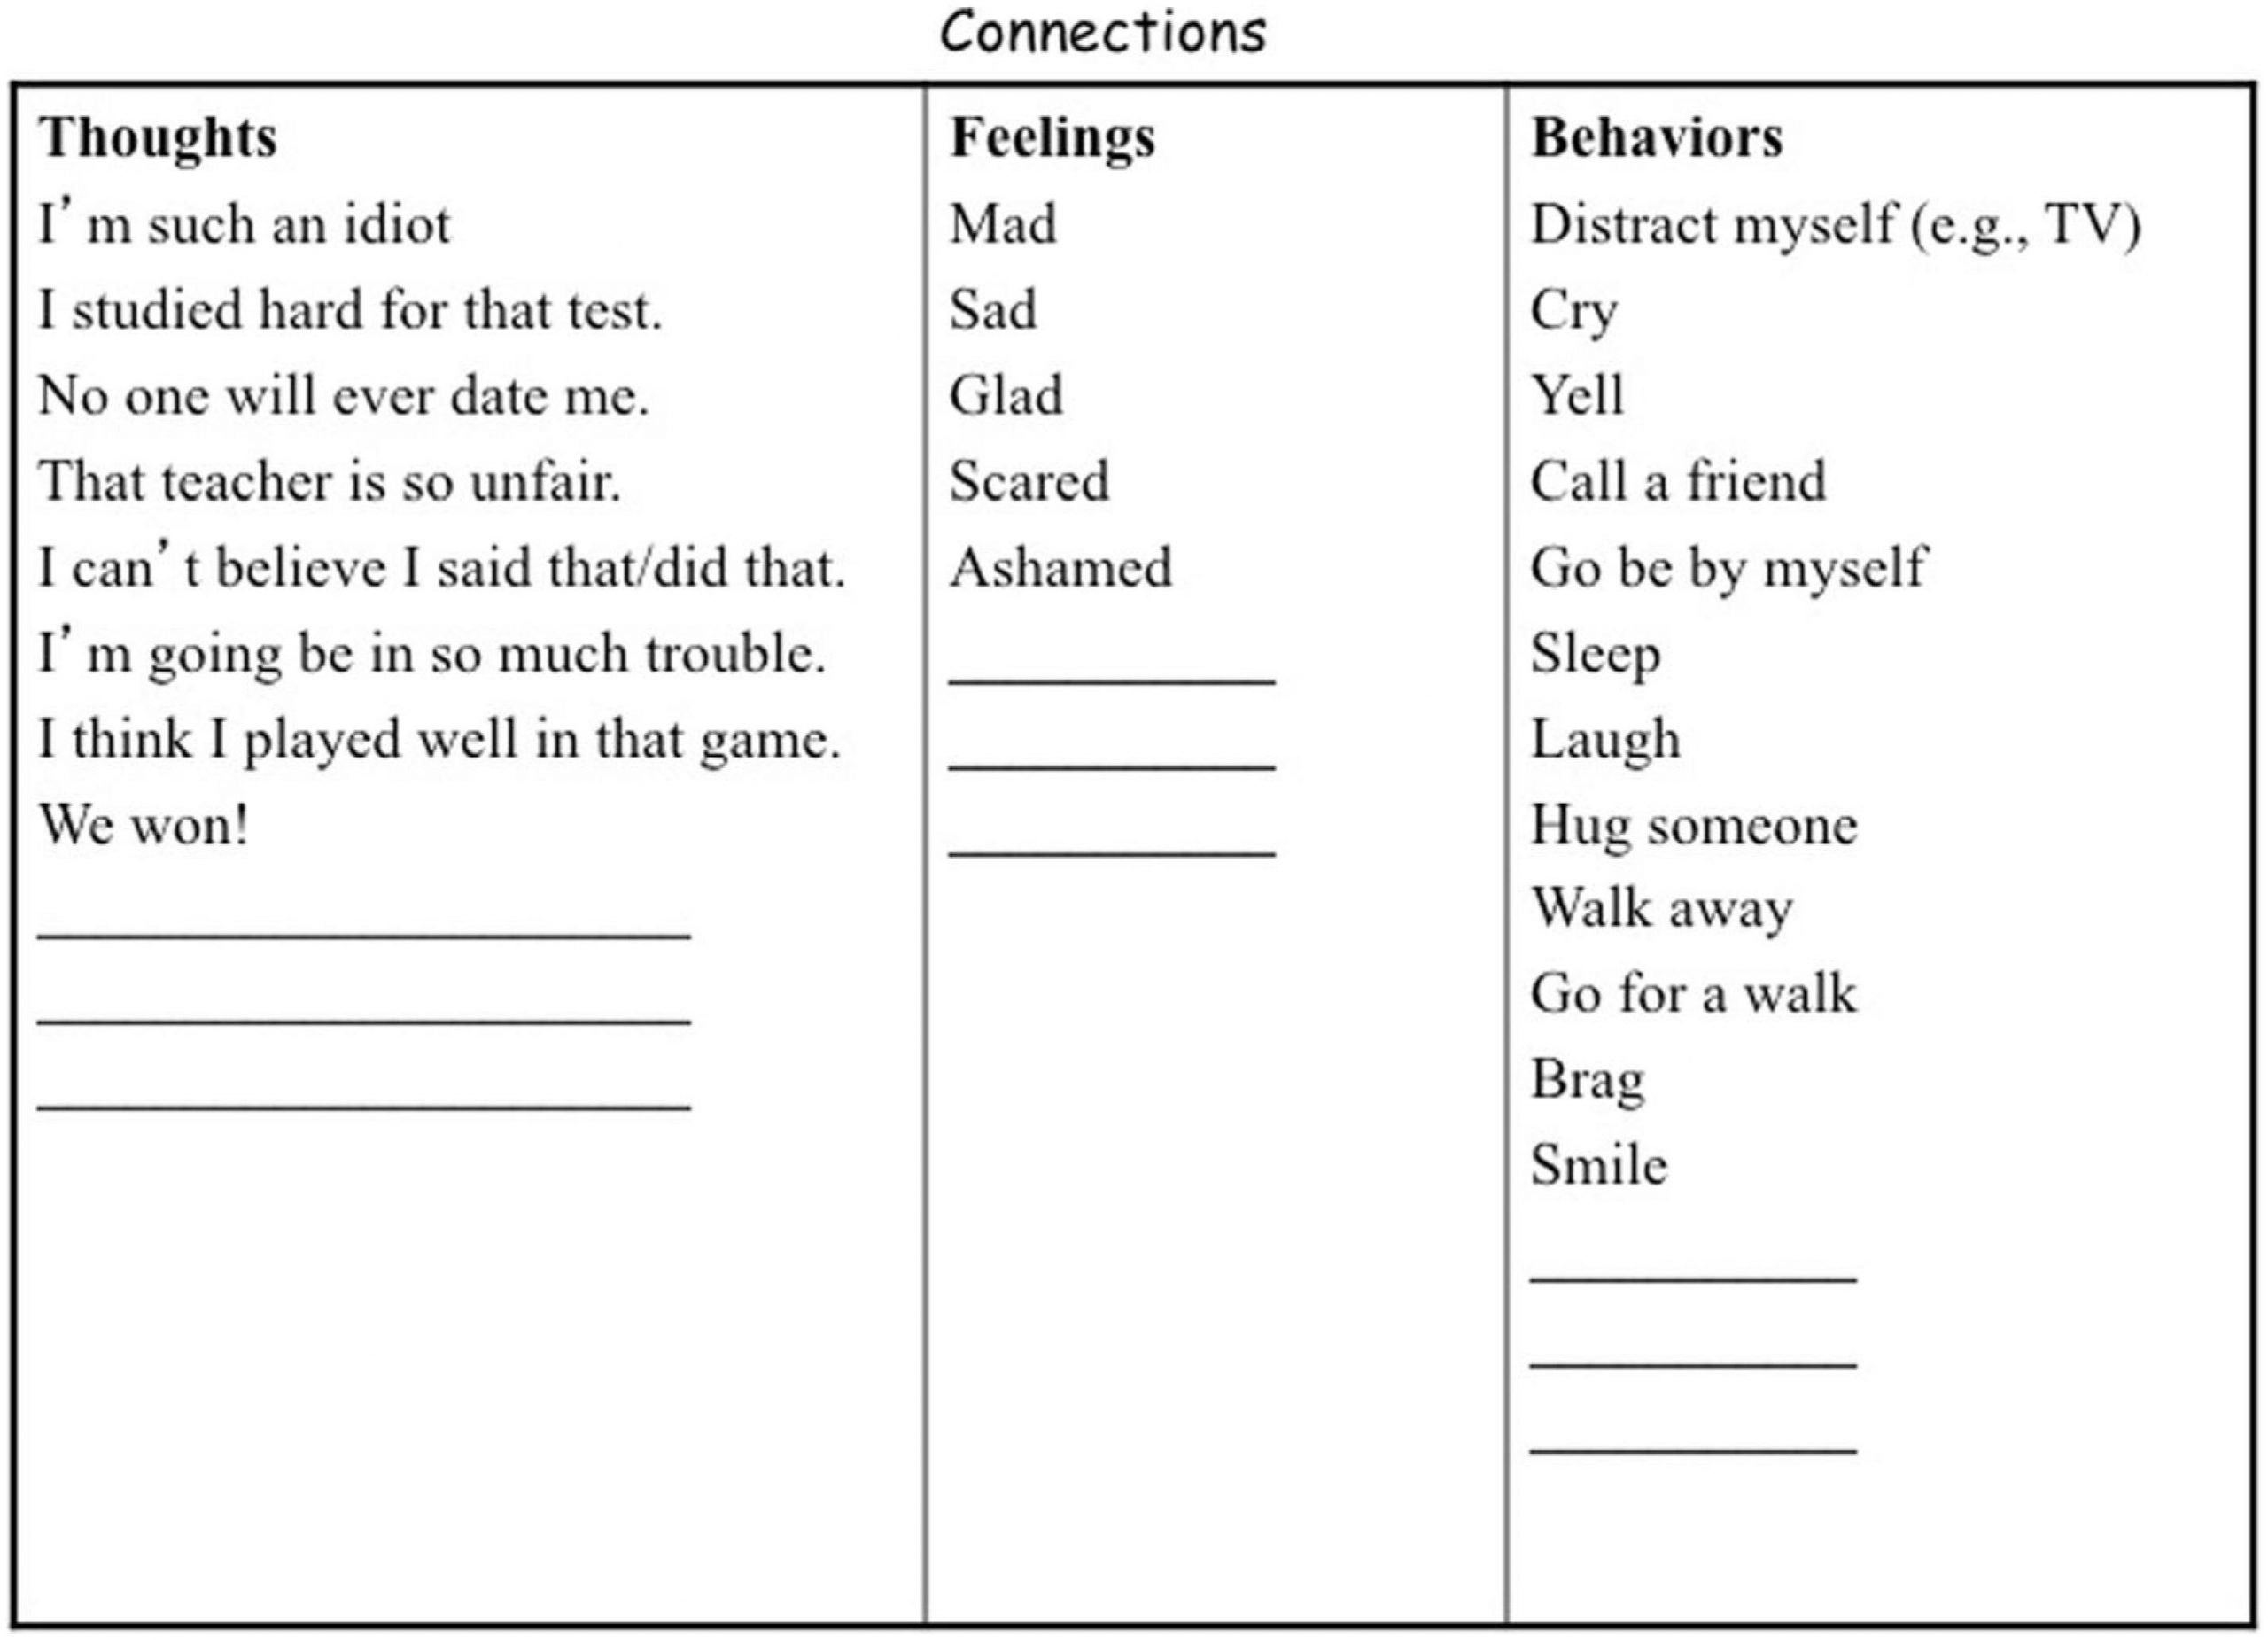 Semantic Relationships Worksheets Lars&lisa A Universal School Based Cognitive Behavioral